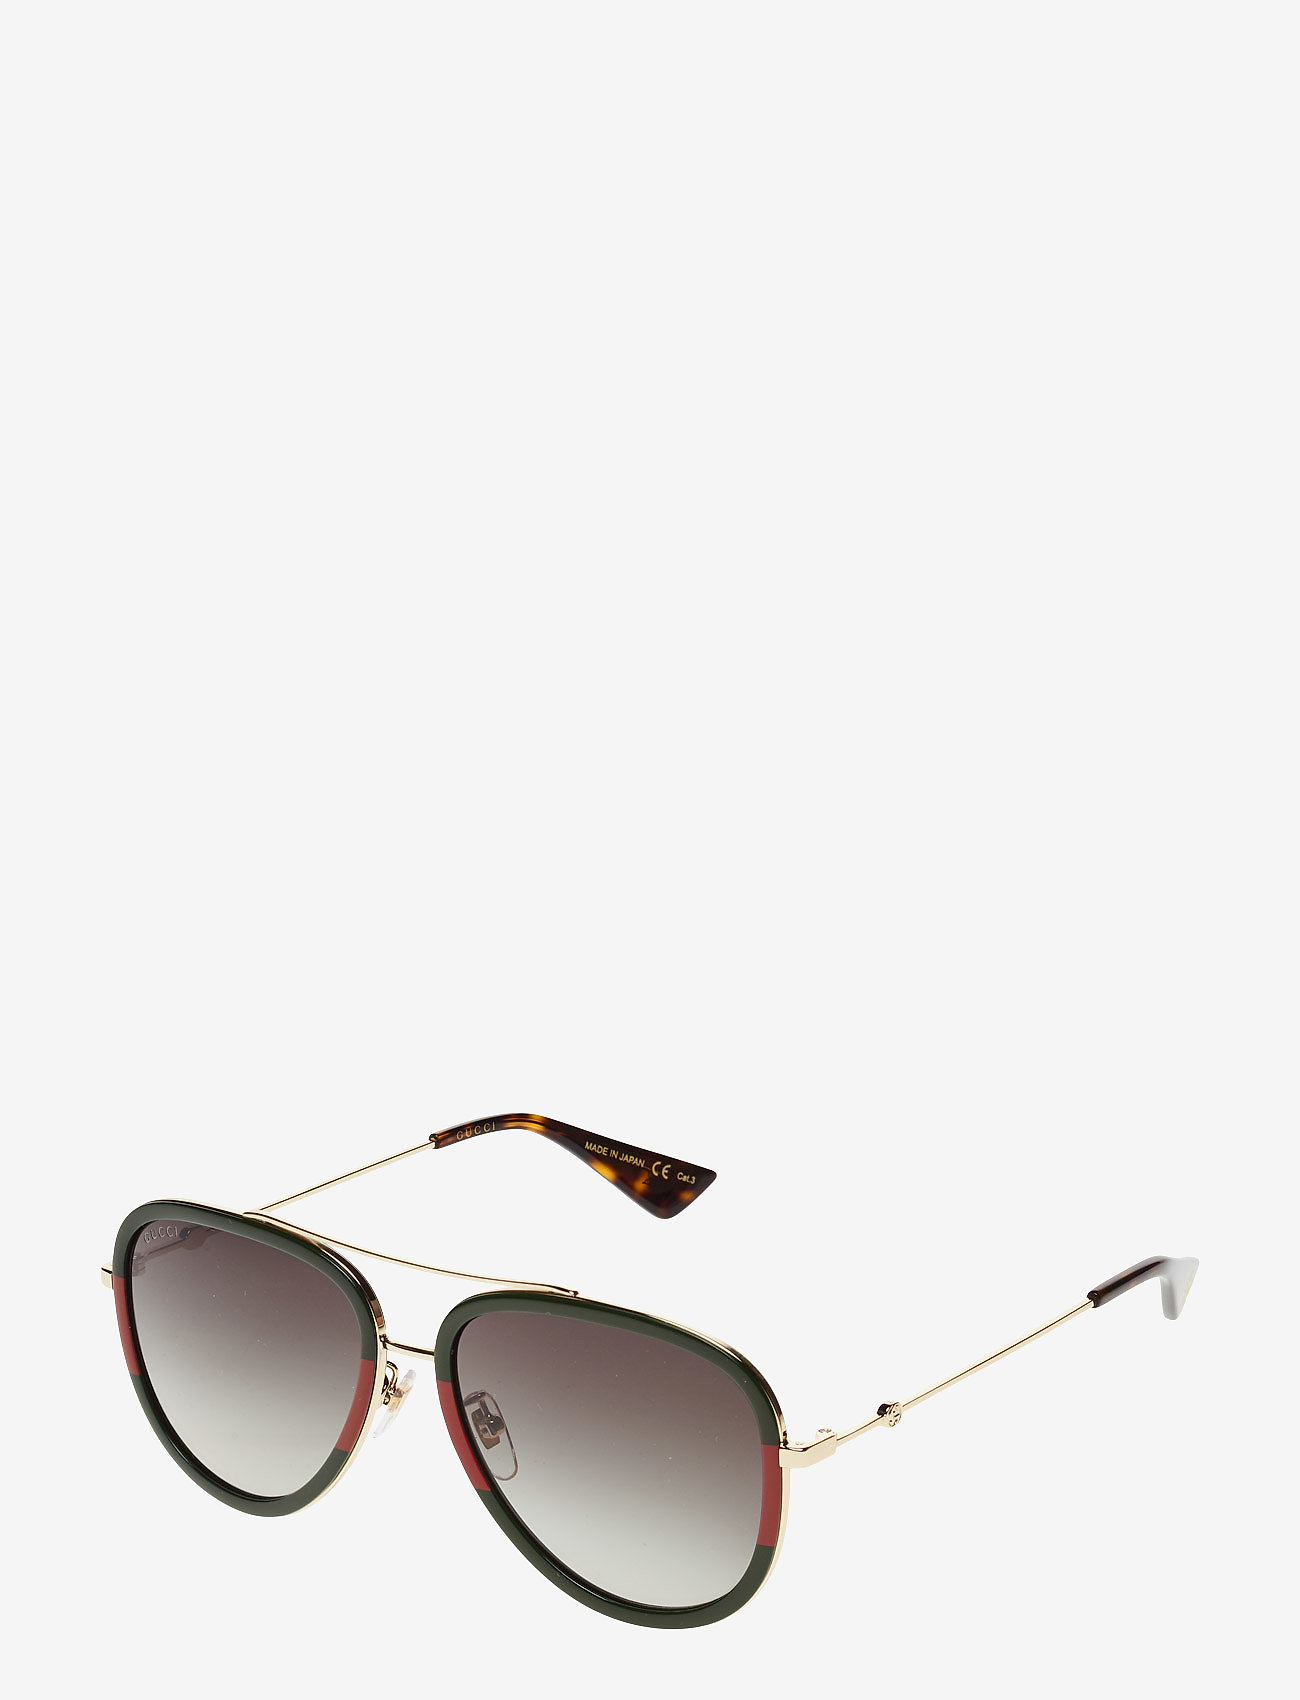 Gucci Sunglasses - GG0062S - pilot - gold-gold-green - 1